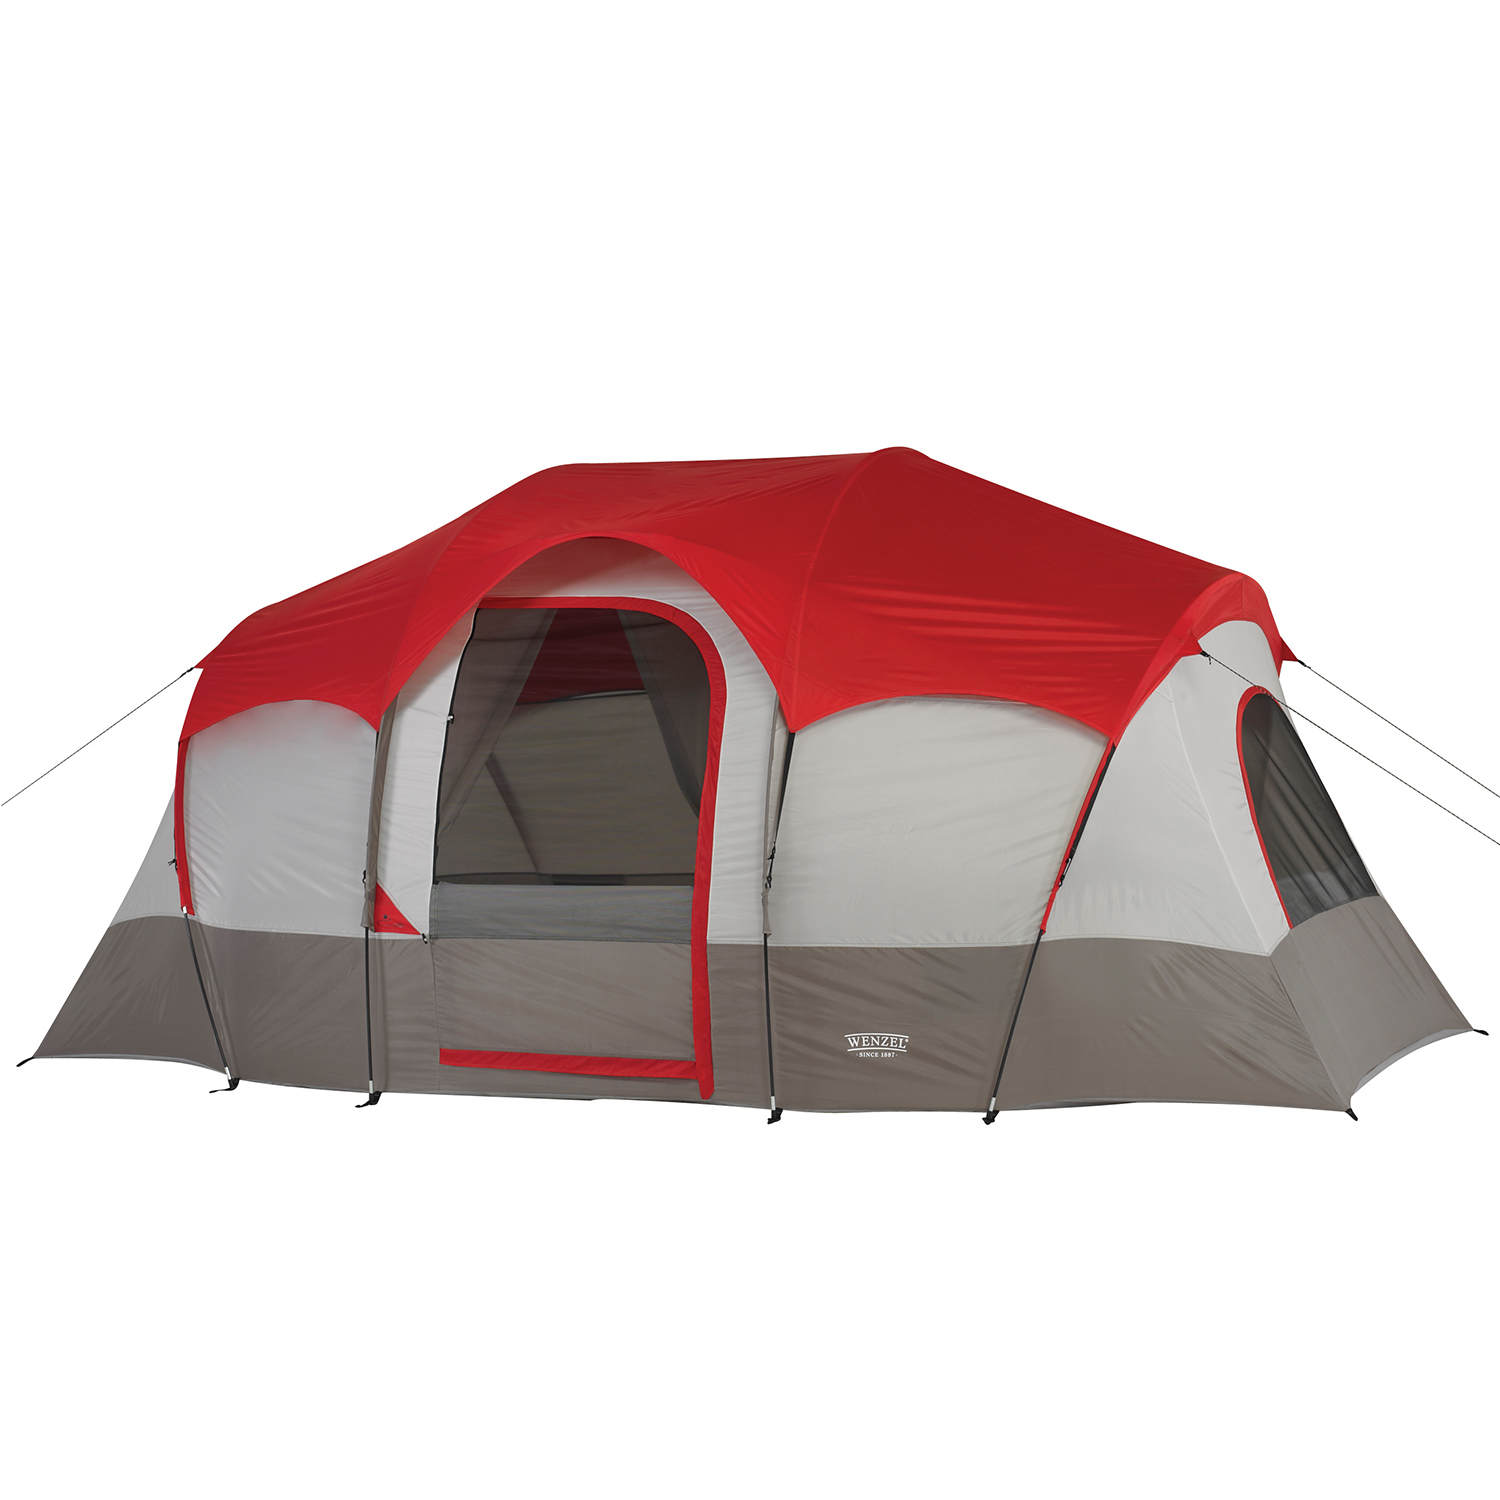 tents 7 person tents wenzel blue ridge 7 person 2 room 14 feet by 9